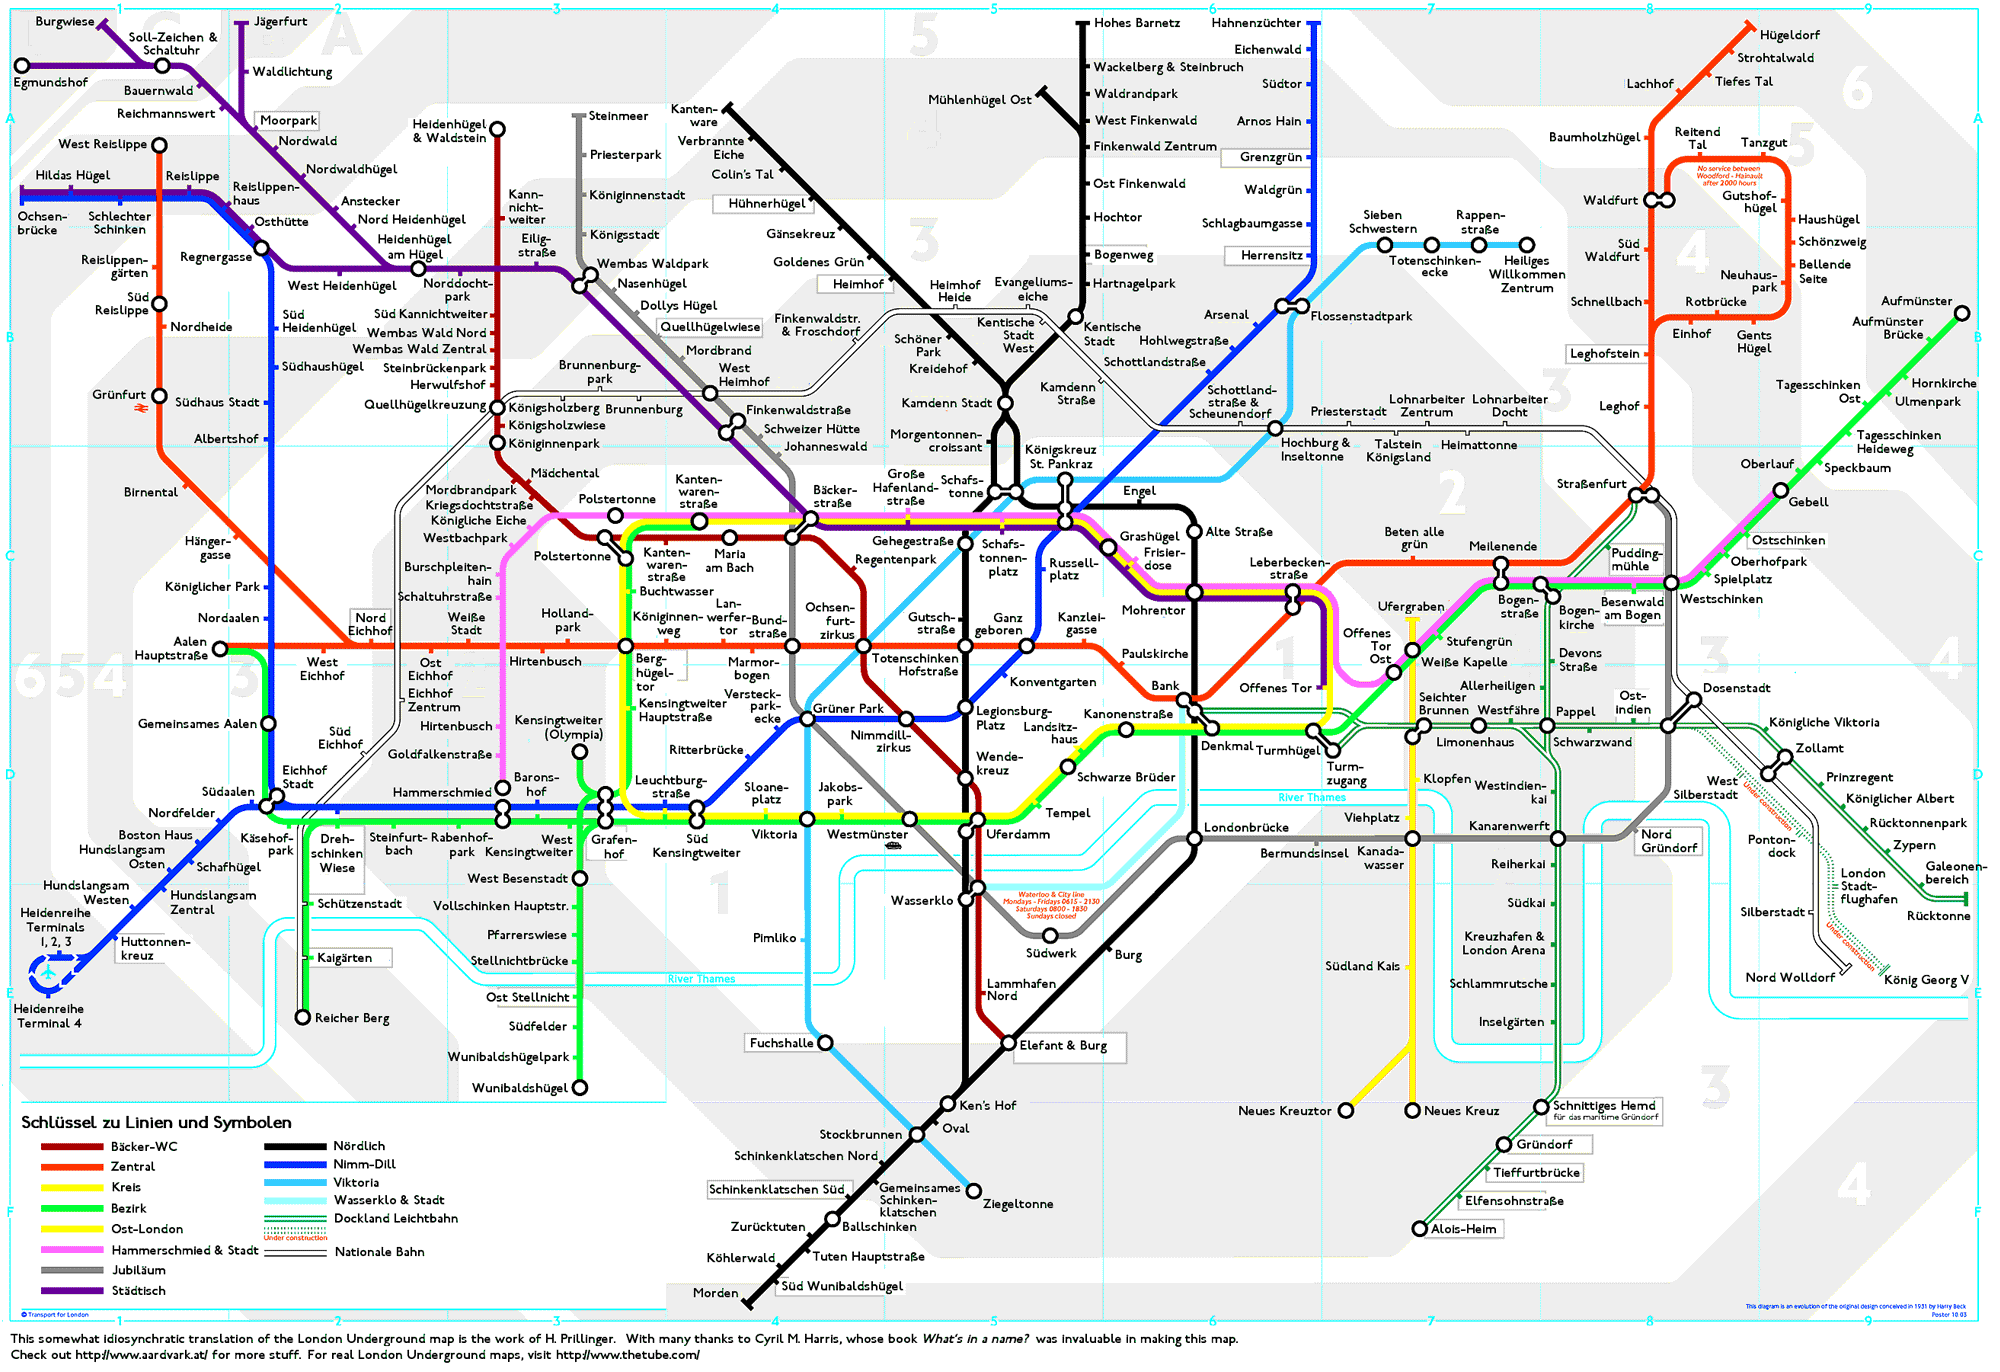 London Underground Map translated into German ©2004 Horst Prillinger. All rights reserved. Commercial use prohibited.